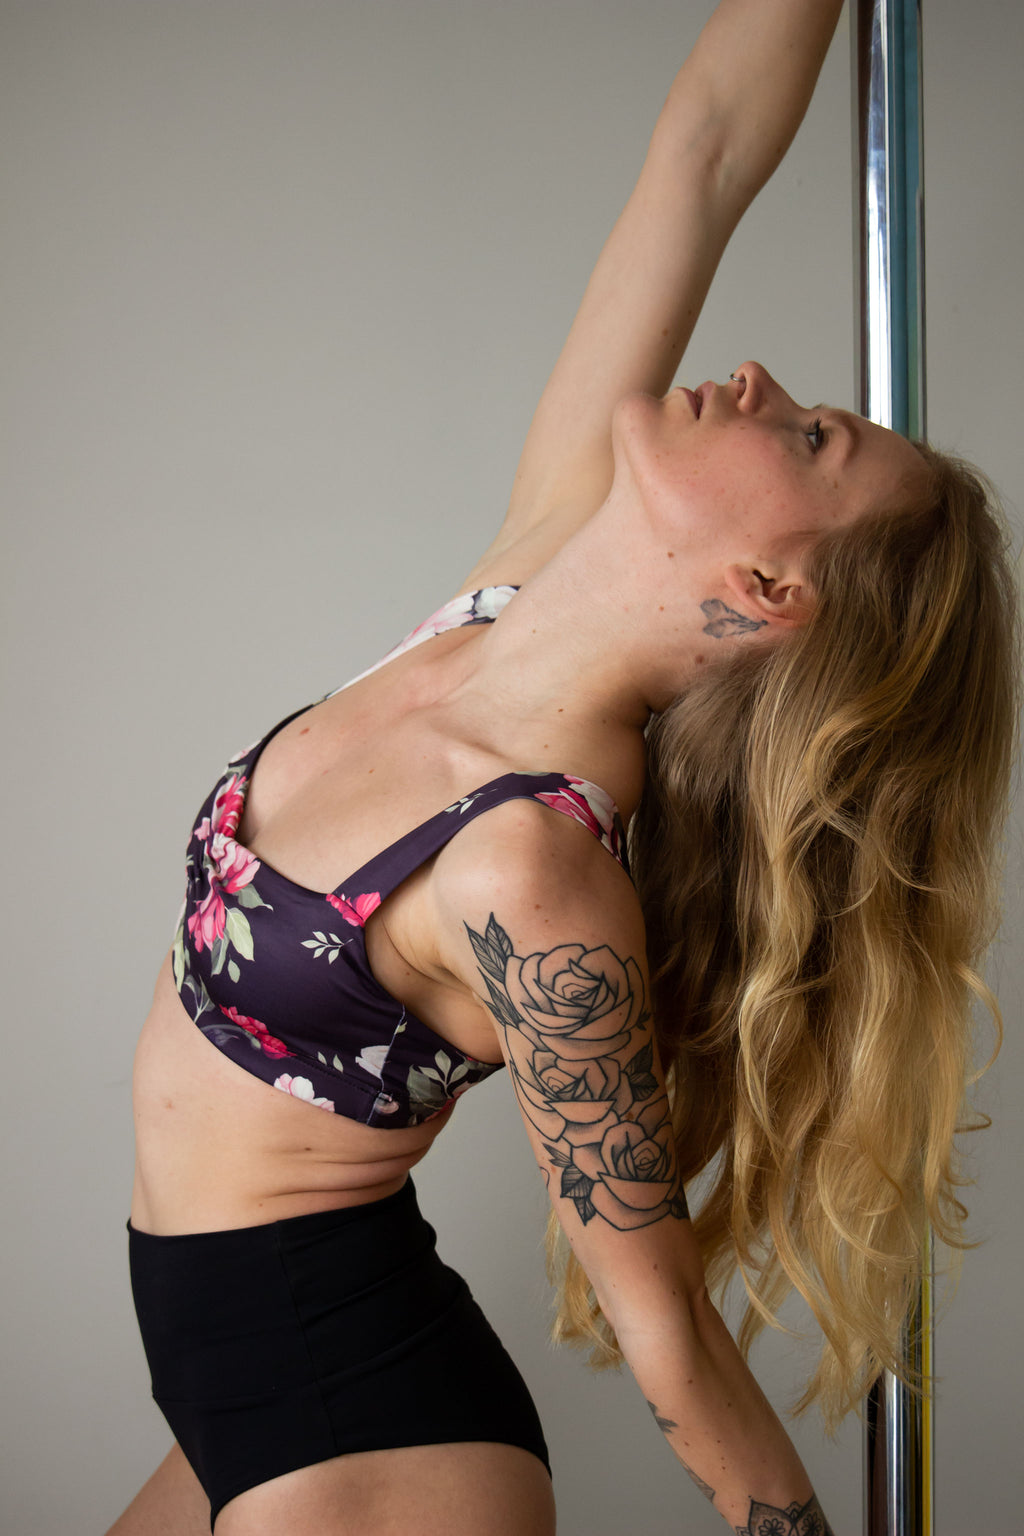 Balconette scrunch sports bra for pole dance in floral print